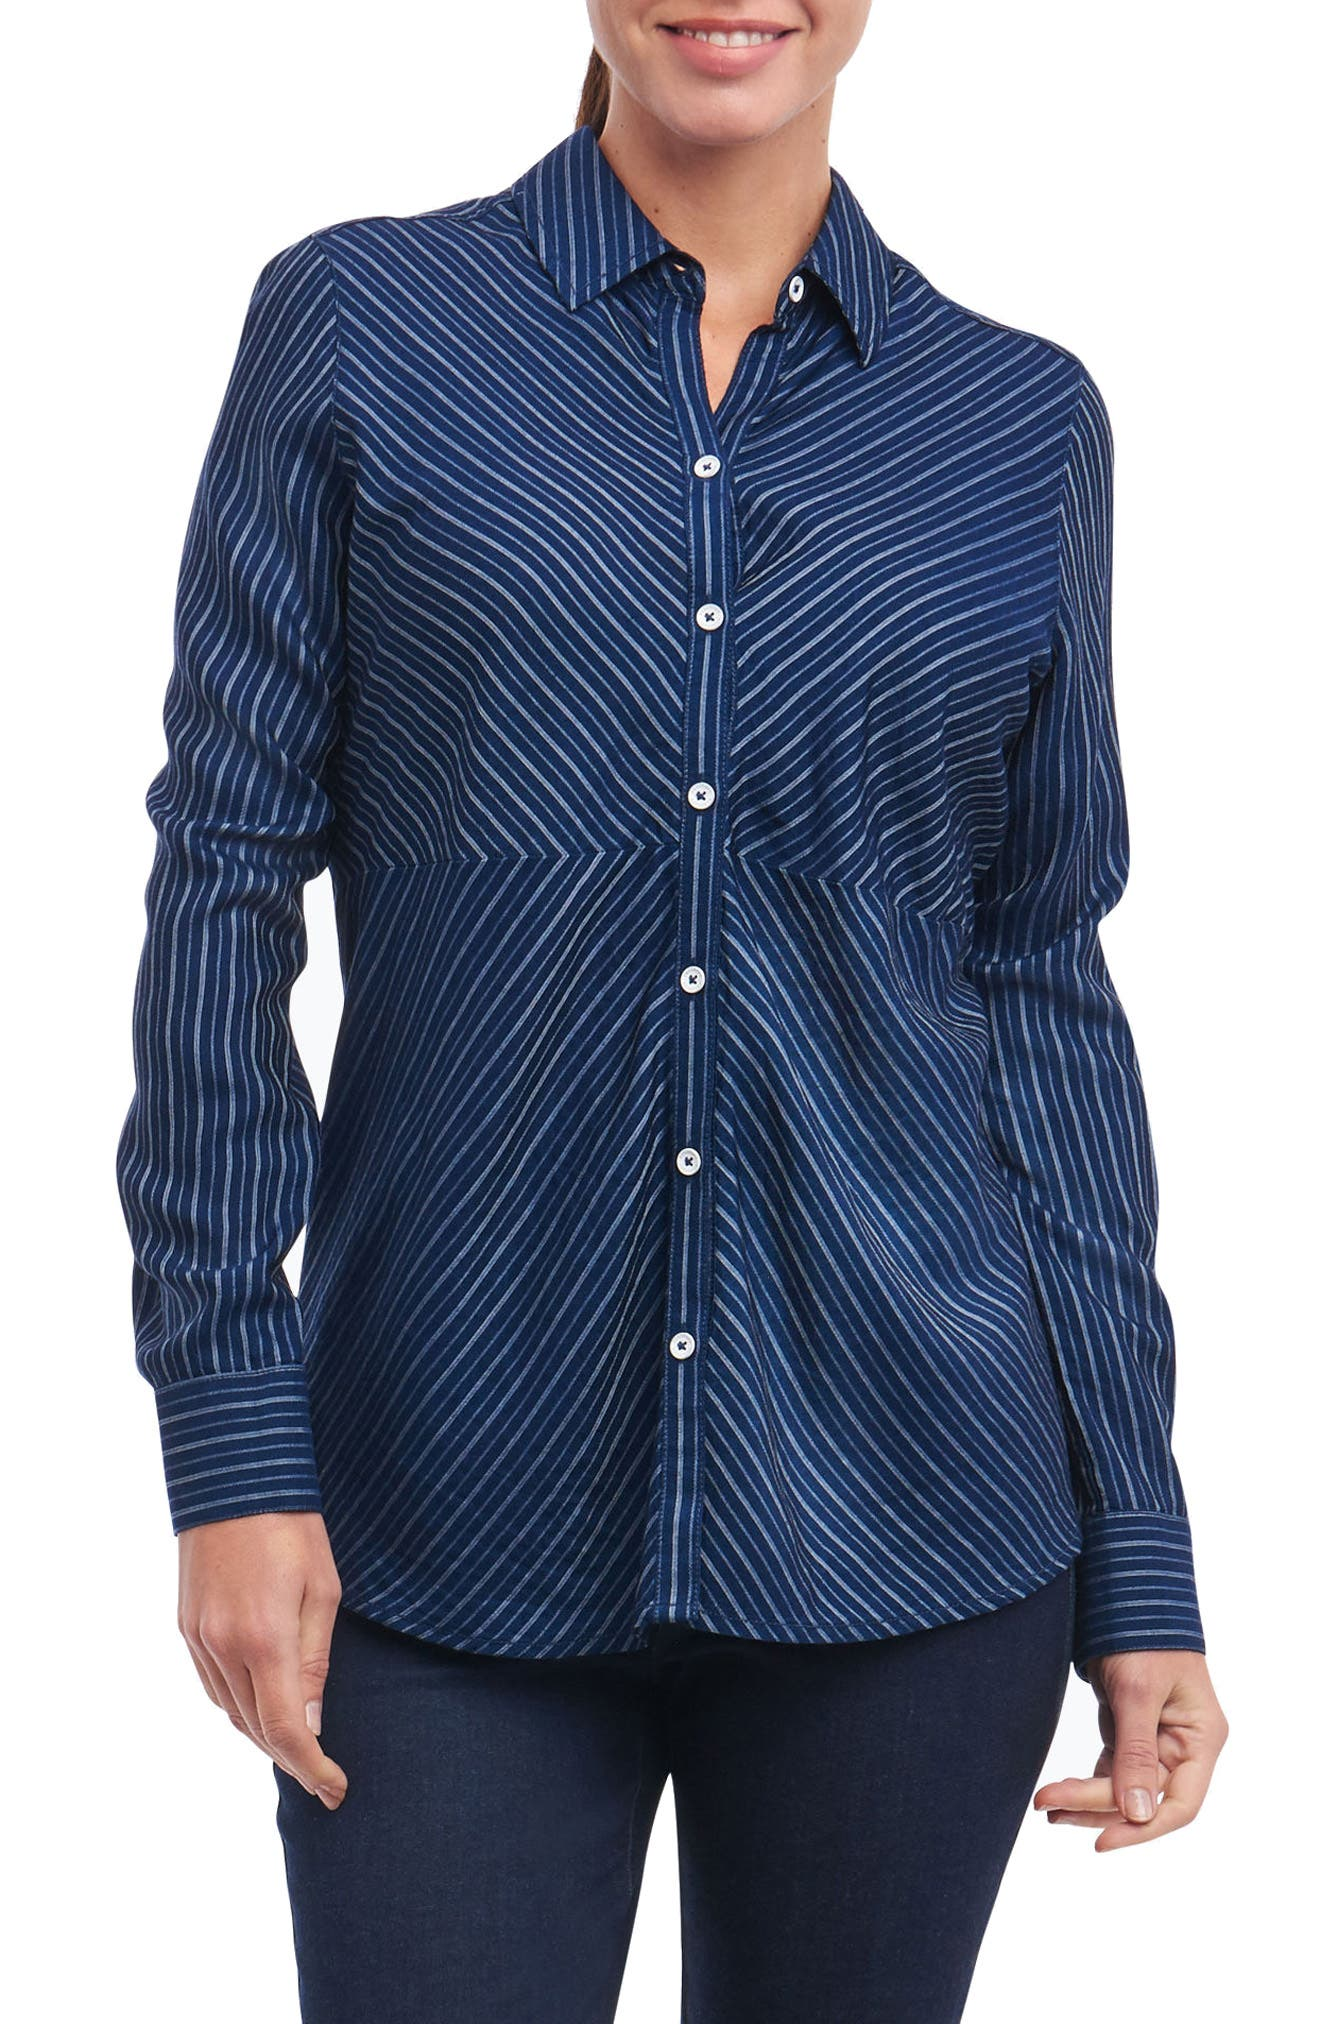 Hazel Pinstripe Shirt,                             Main thumbnail 1, color,                             Navy